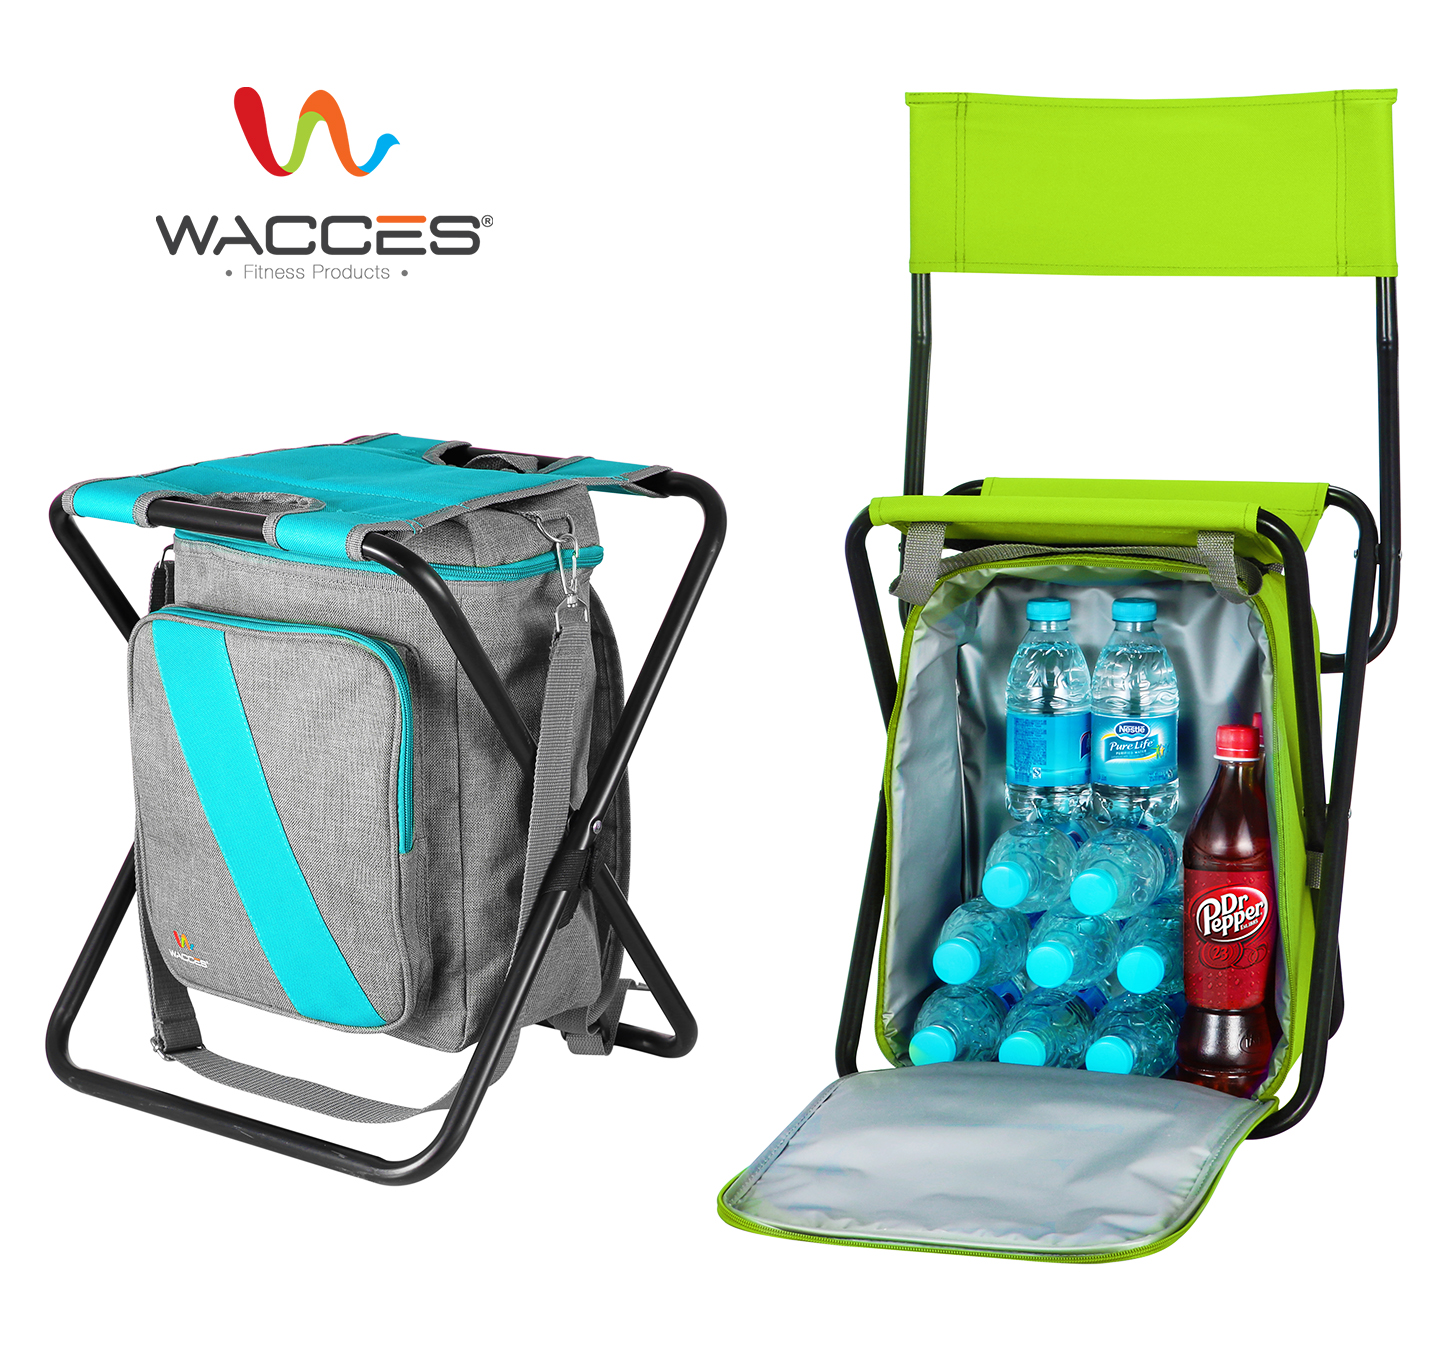 fishing chair rucksack red and blue wacces multi purpose backpack stool with cooler bag